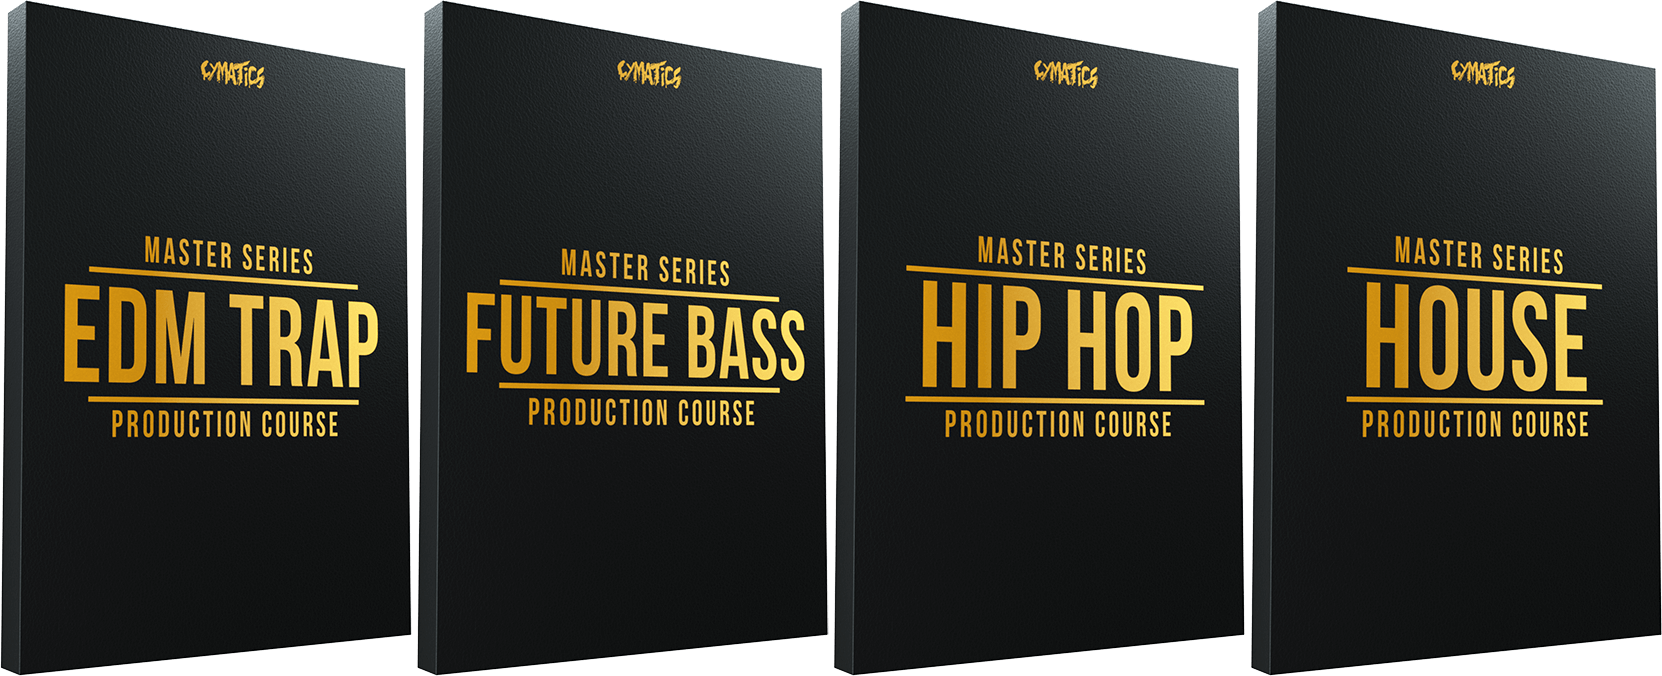 Master Series Collection